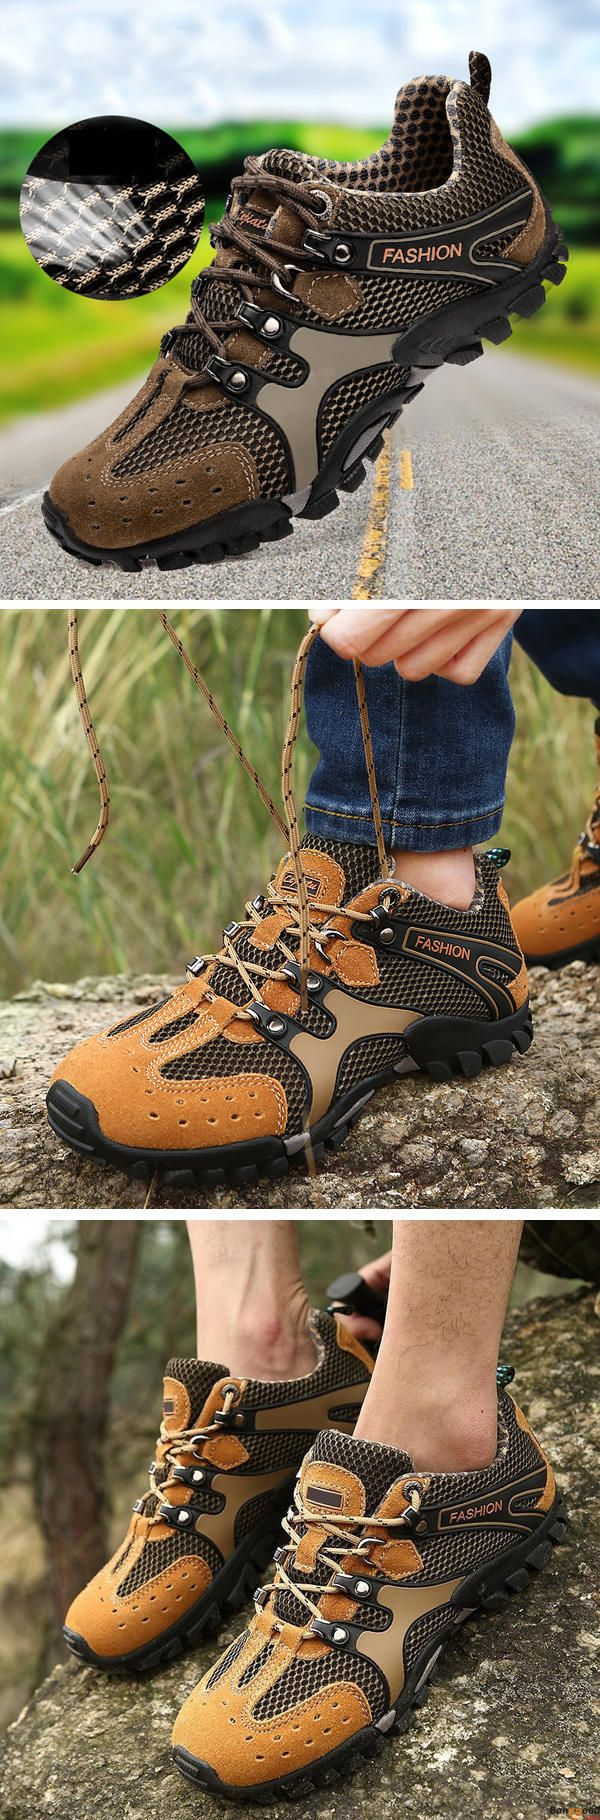 US$47.99+ Free Shipping. 4 colors available. men athletic shoes, casual comfortable shoes, sneakers, athletic shoes. Fashion and chic, casual shoes, men's sneakers,flats, men's style, chic style, fashion style. Shop at banggood with super affordable price